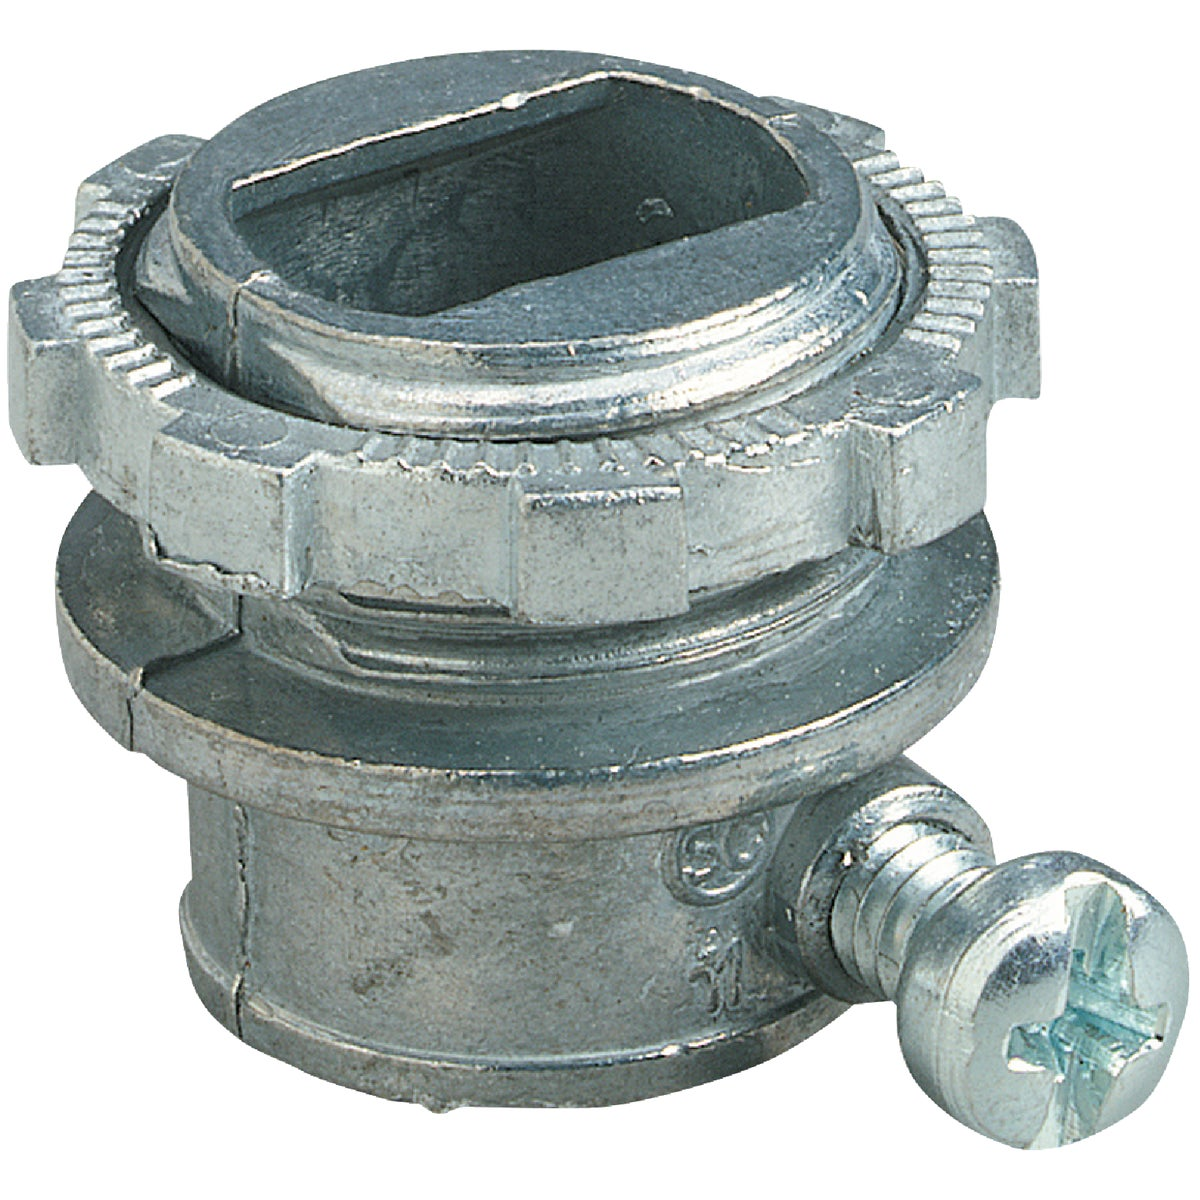 """100PC 3/8""""FLEX CONNECTOR - XC220SC100CP by Thomas & Betts"""